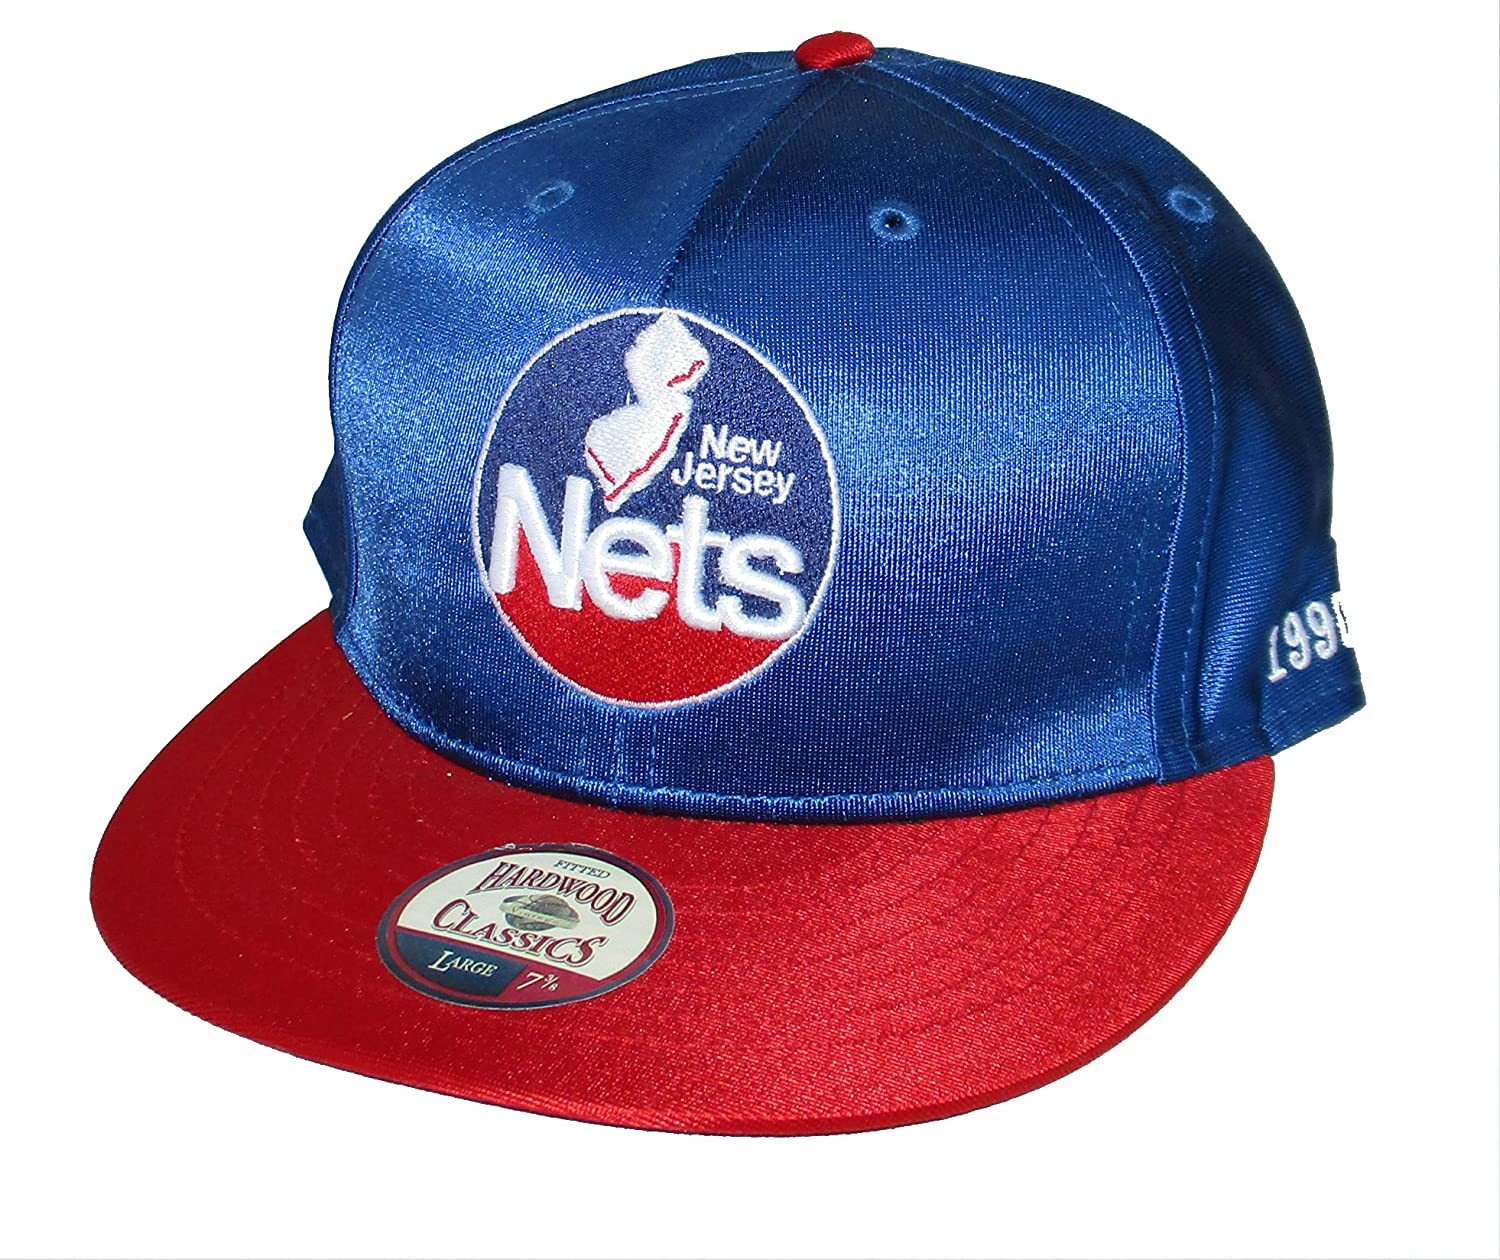 a1ddeff22112 Amazon.com    47 New Jersey Nets Fitted Size 7 3 8 Hat Cap - Blue   Sports    Outdoors